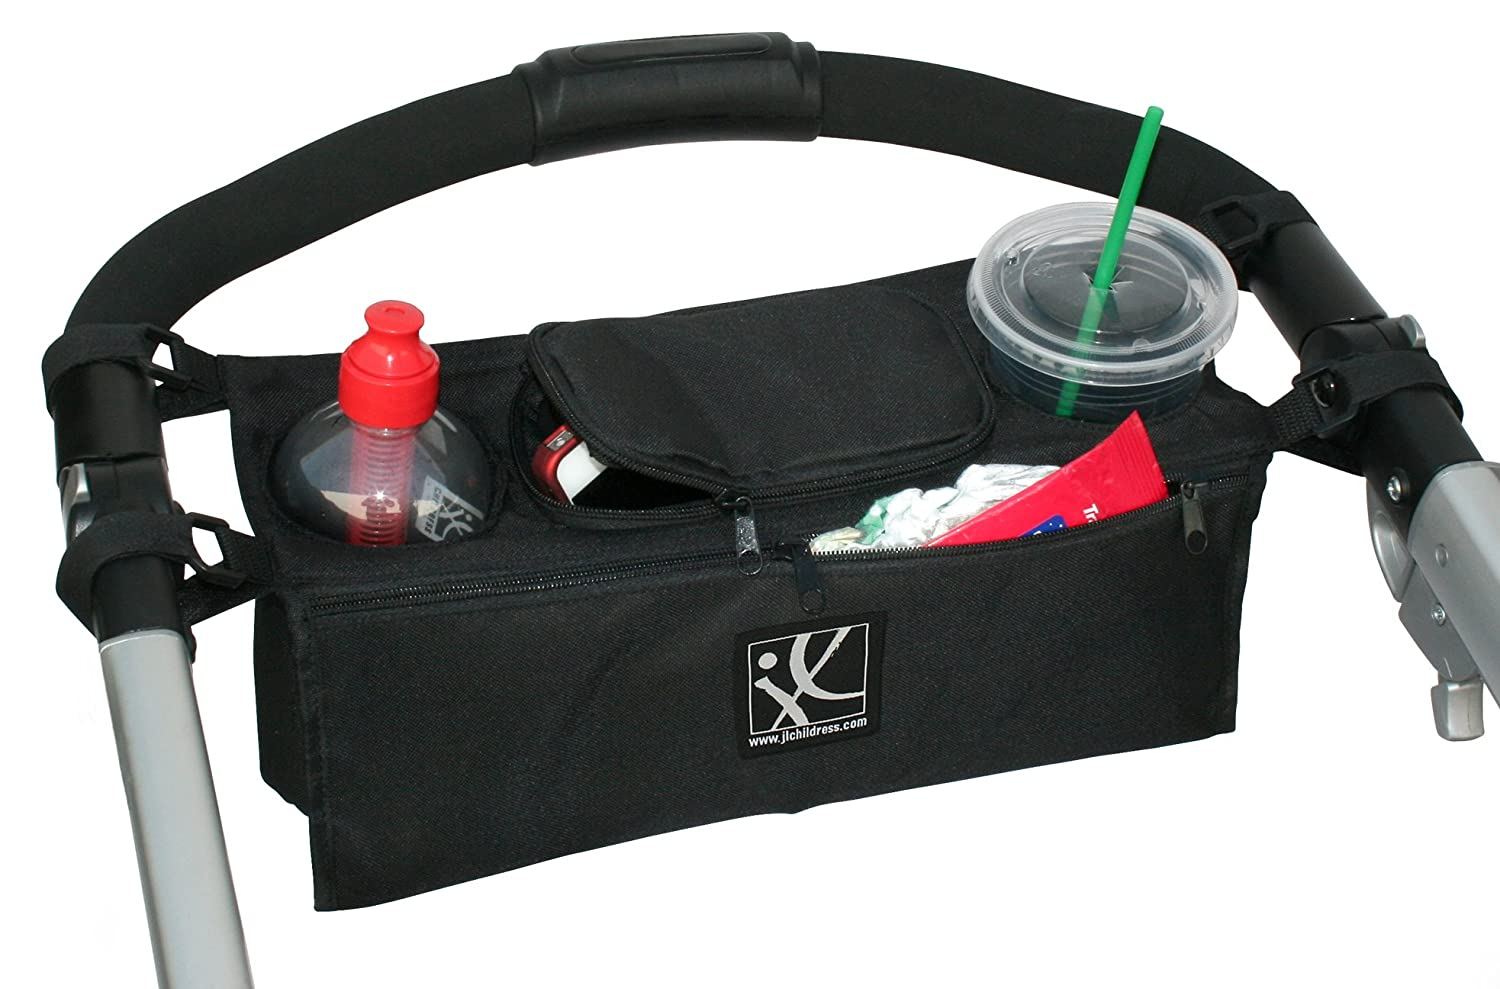 Jl Childress Sip 'N Safe Console Tray 2030